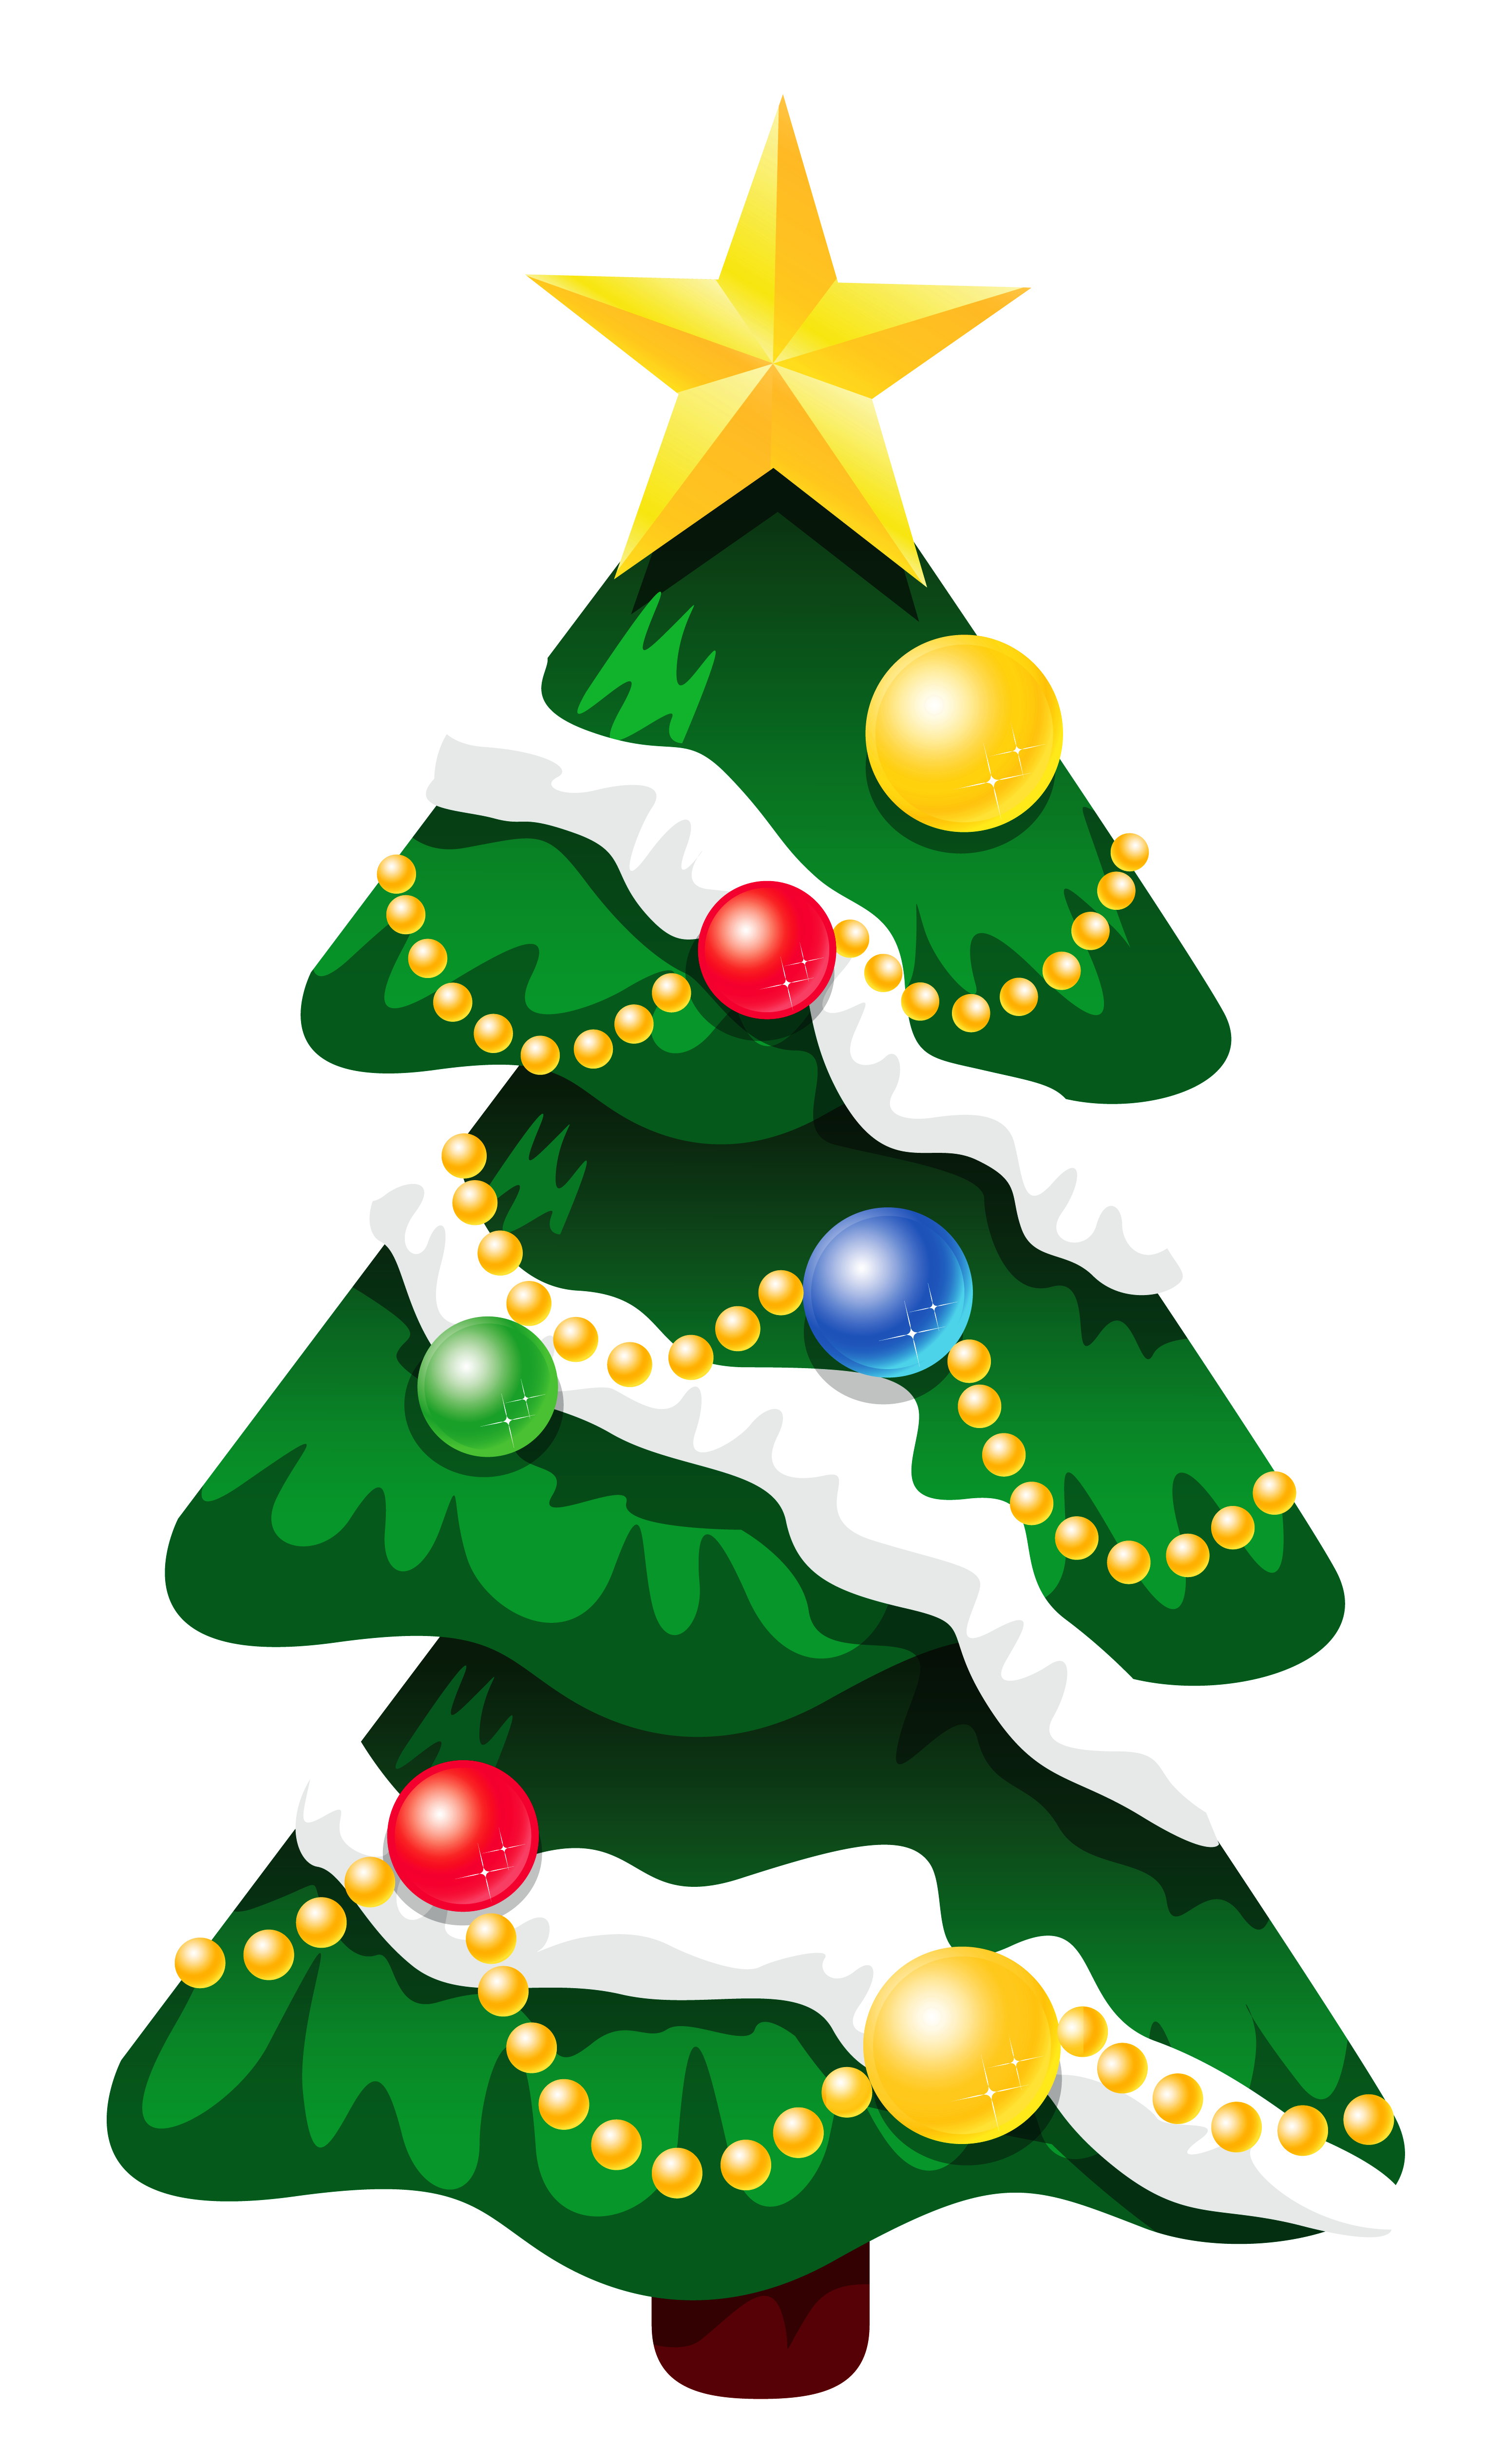 Christmas tree vector png. Transparent snowy deco xmas